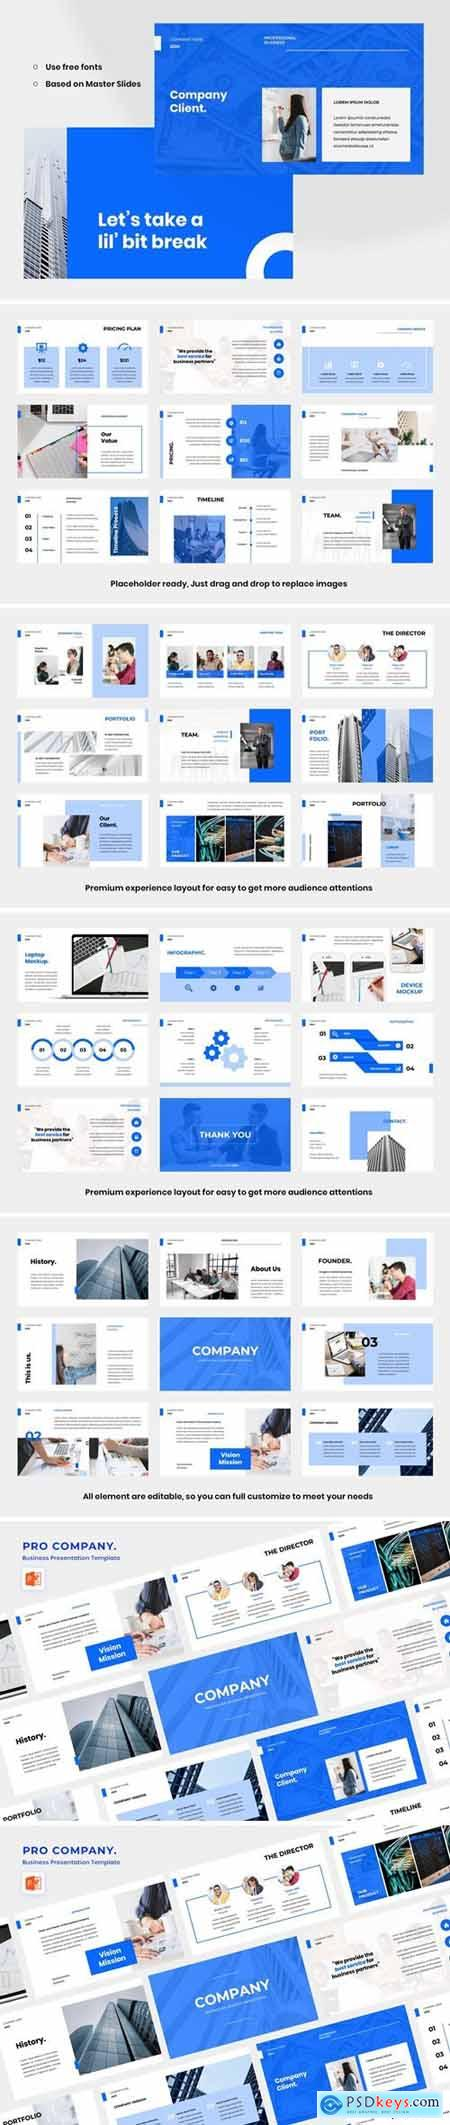 Pro Company Powerpoint, Keynote and Google Slides Templates